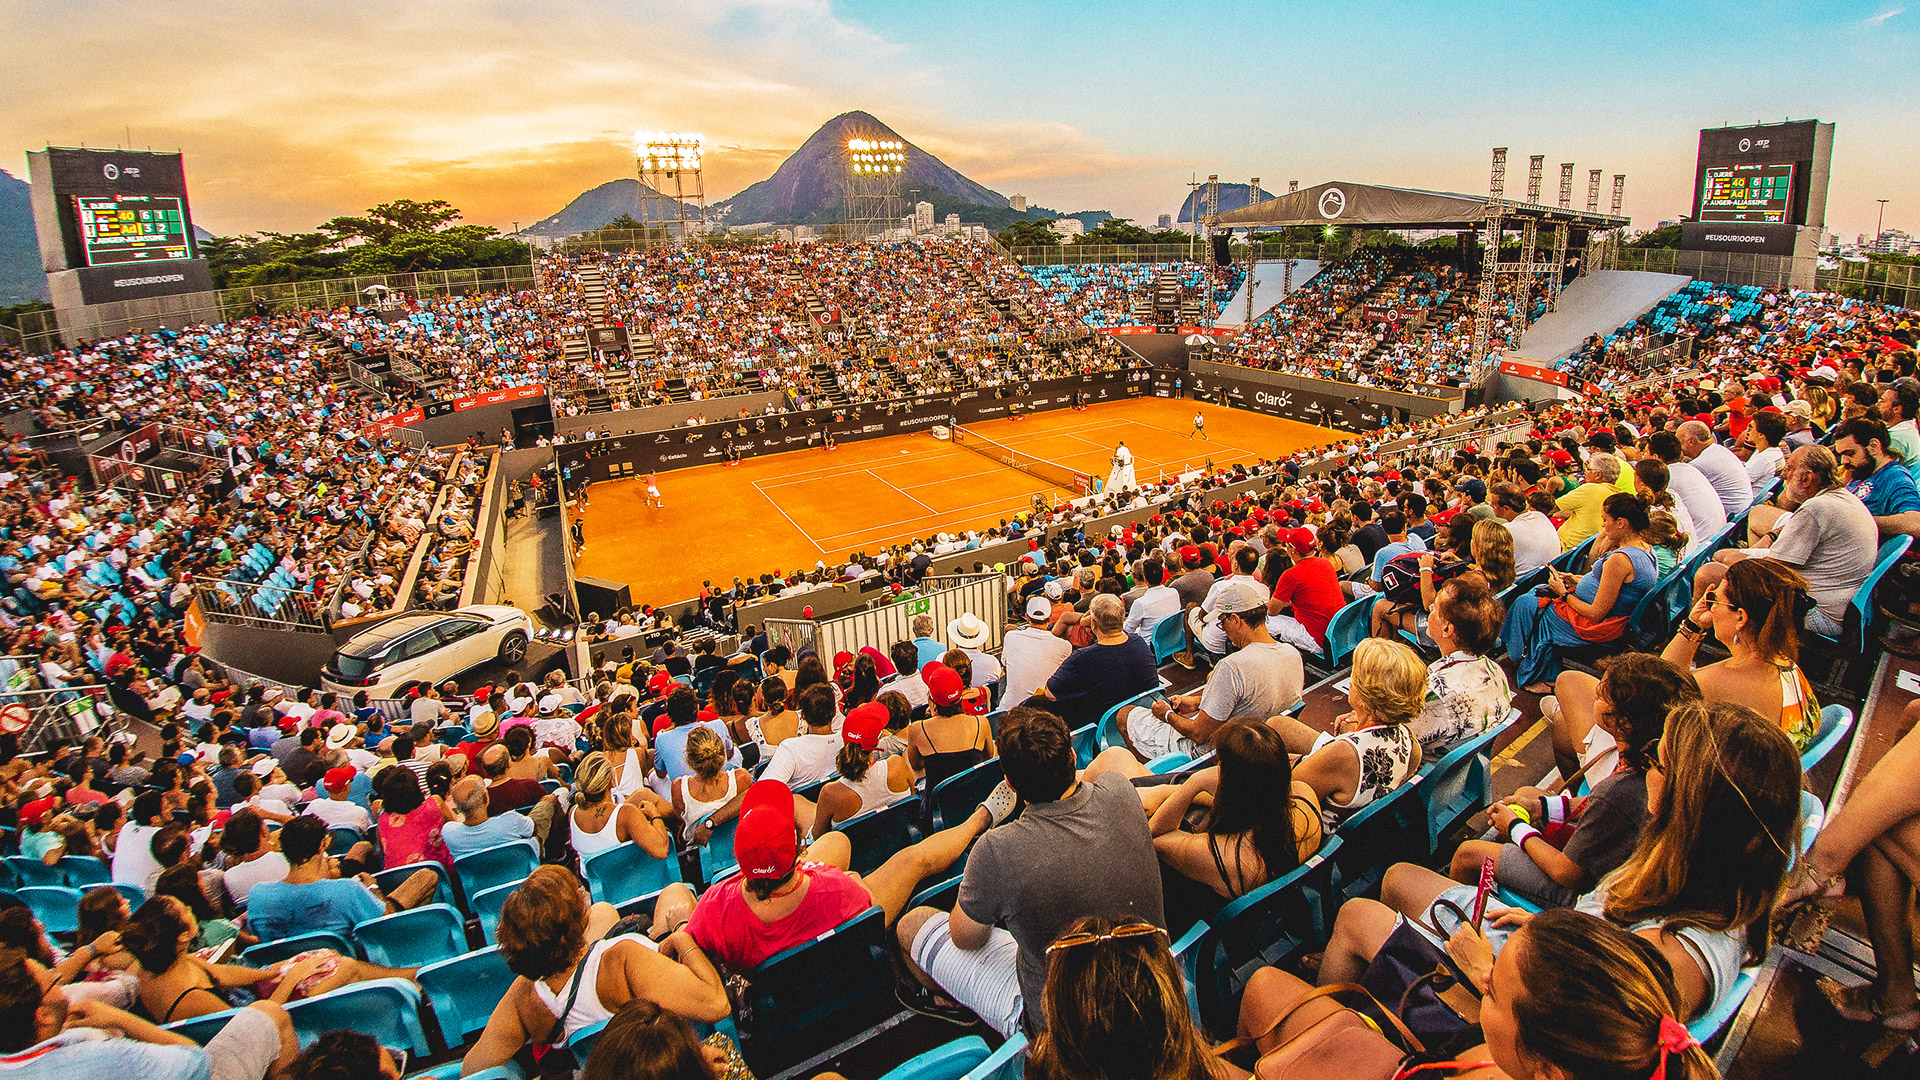 2020 Rio Open Presented by Claro - 17 February Main Coverage and Highlights